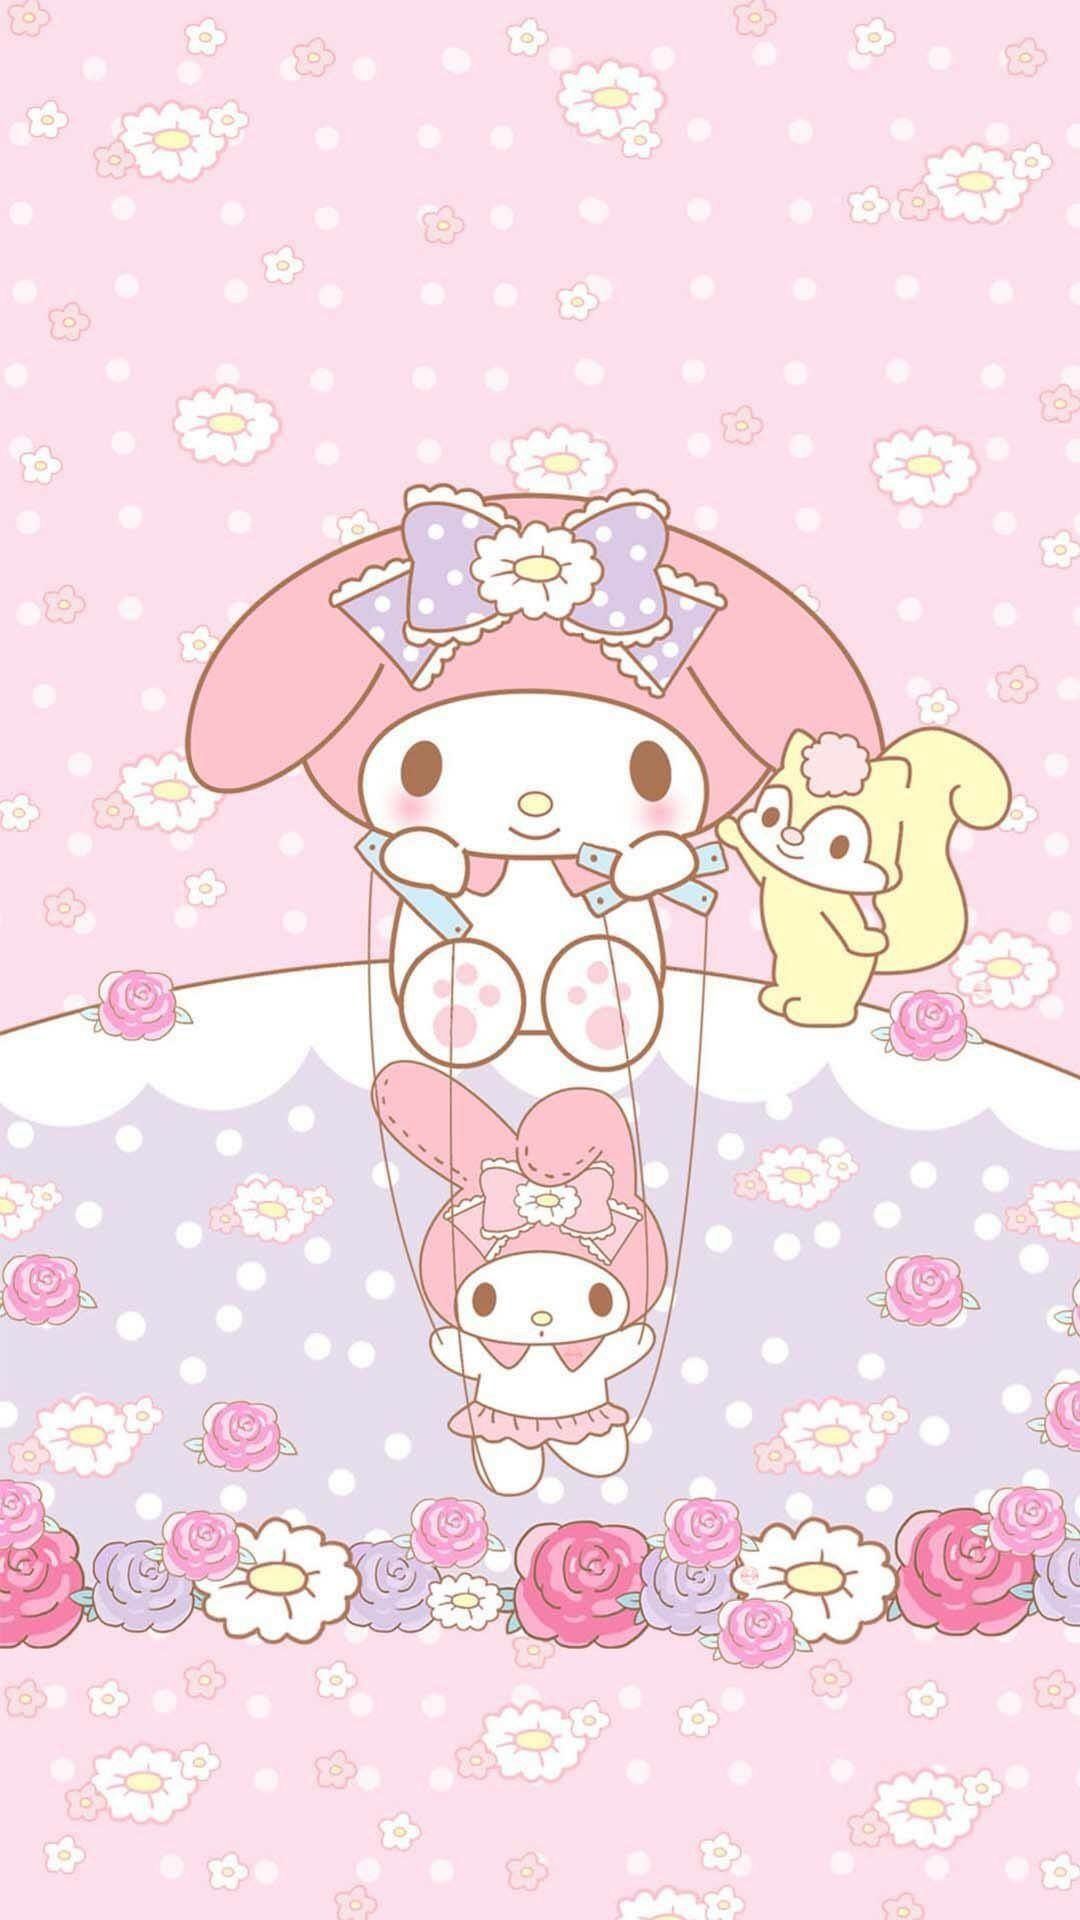 Pin by Flying Beef on pastel/kawaii | Hello kitty my ...